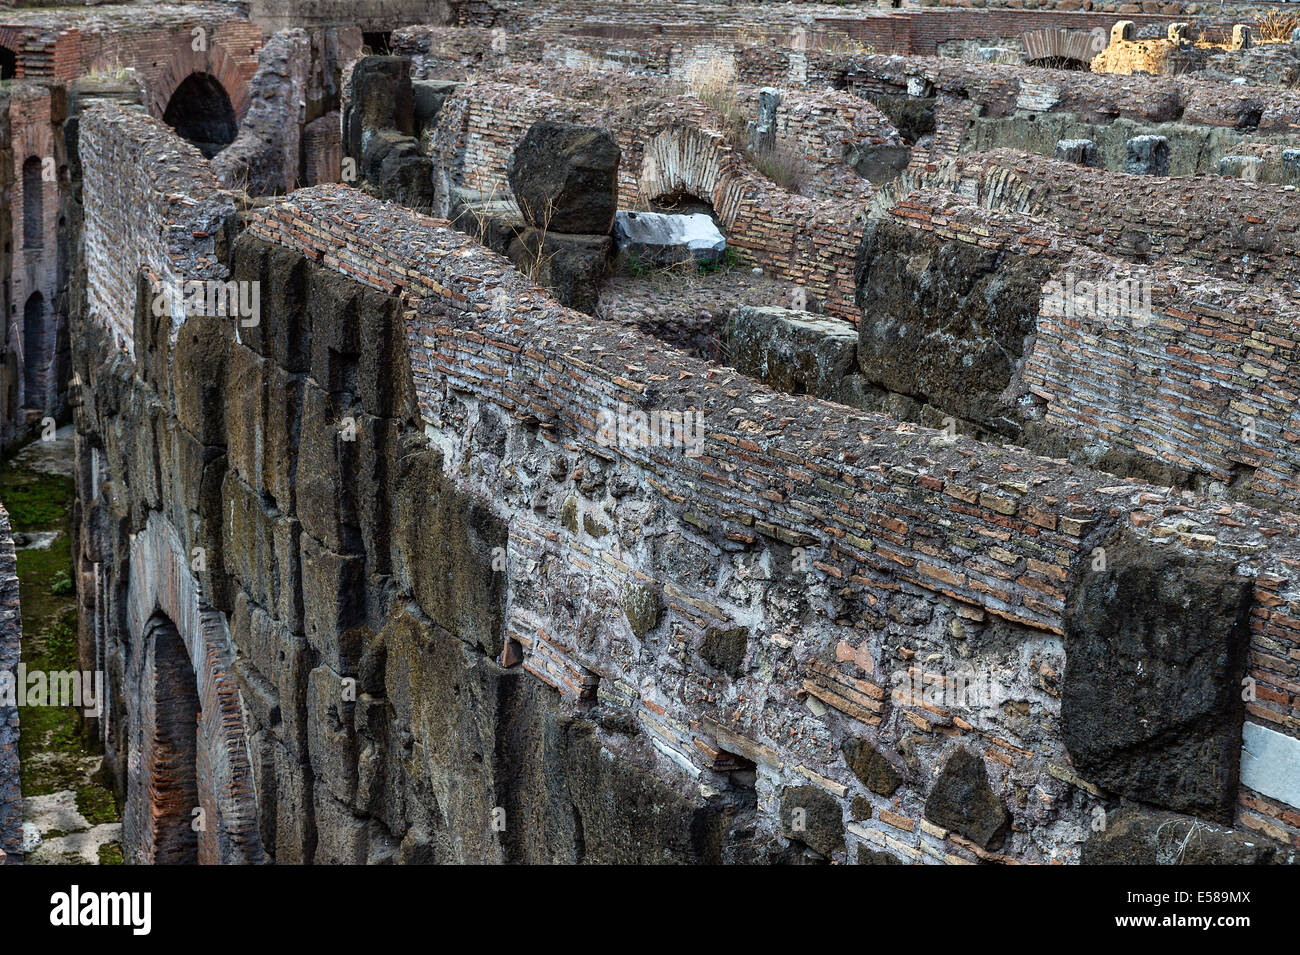 Underground interior ruins of The Colosseum, Rome, Italy - Stock Image